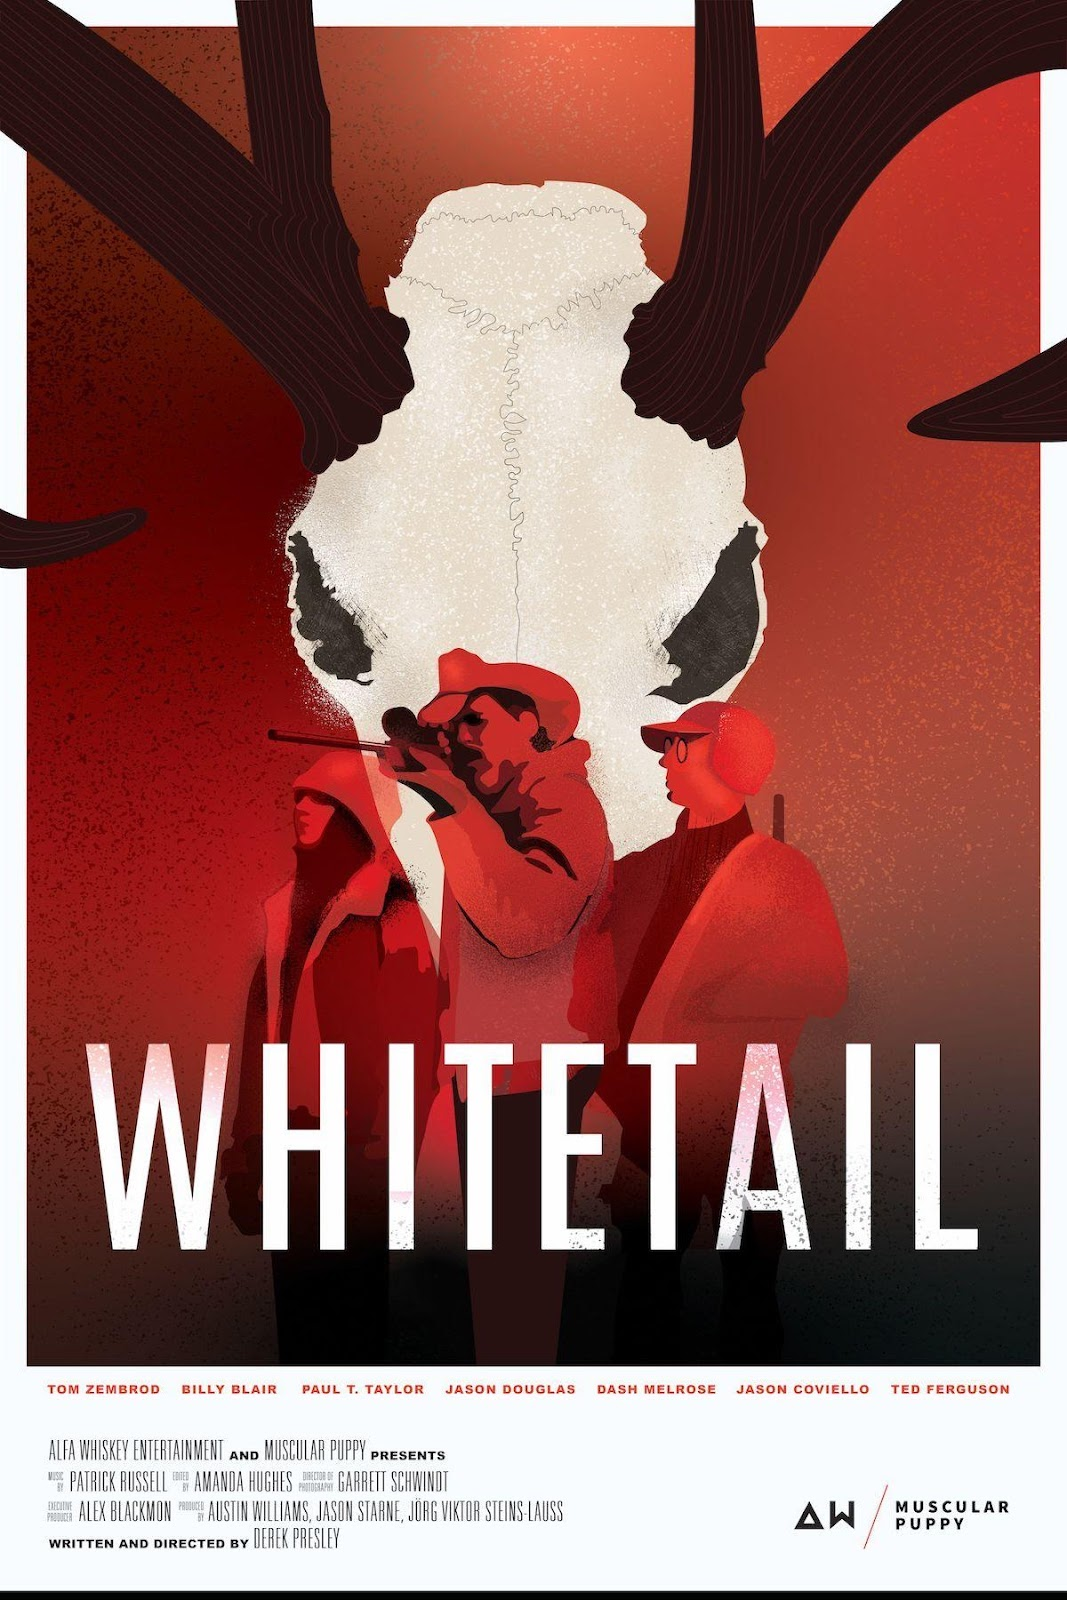 'Whitetail' is a new southern gothic horror that's guaranteed to keep you on the edge of your seat. Come meet its director, Derek Presley.